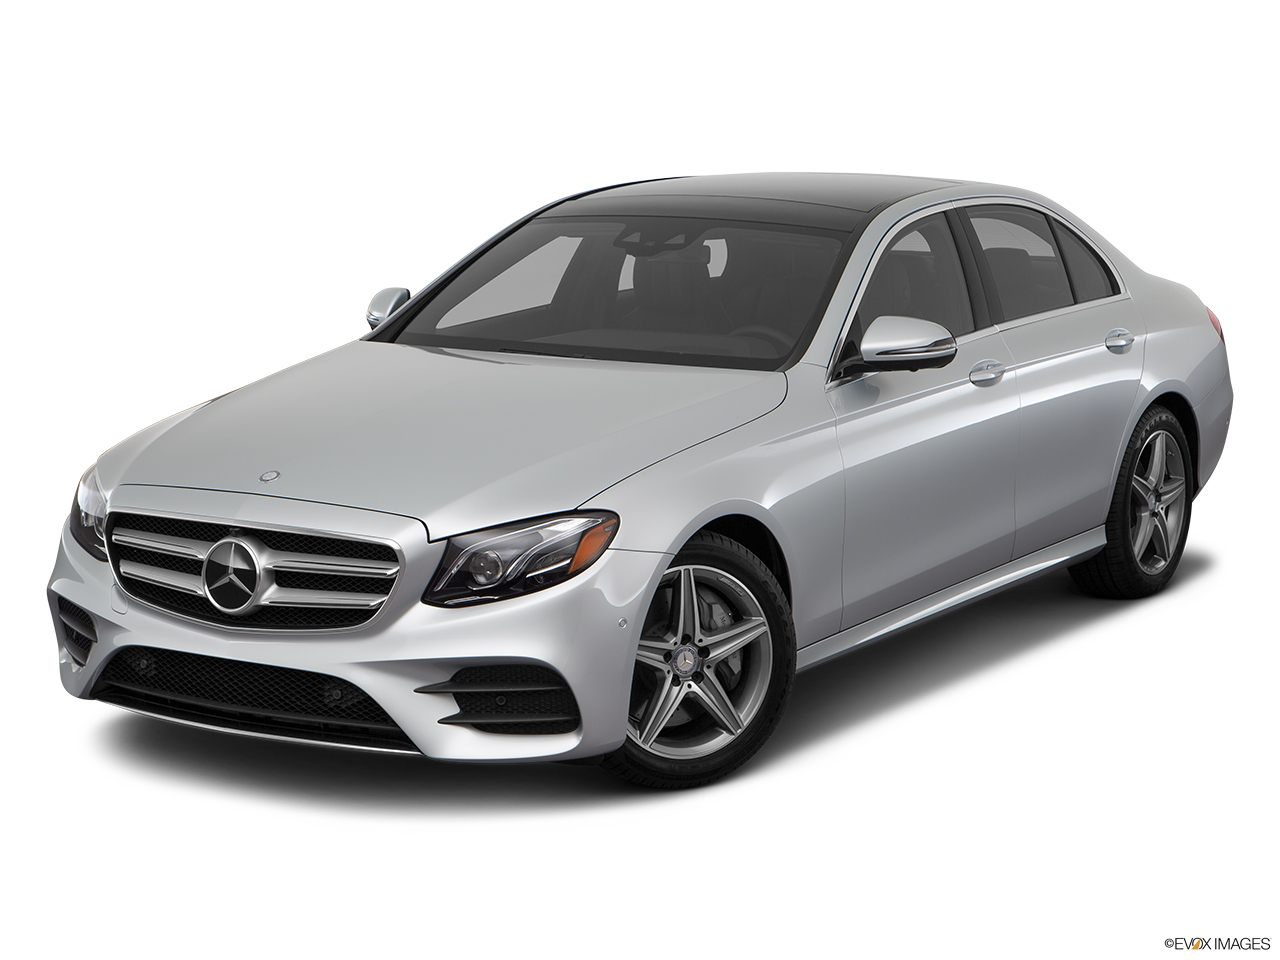 Mercedes benz e class saloon price in egypt new mercedes for New mercedes benz price